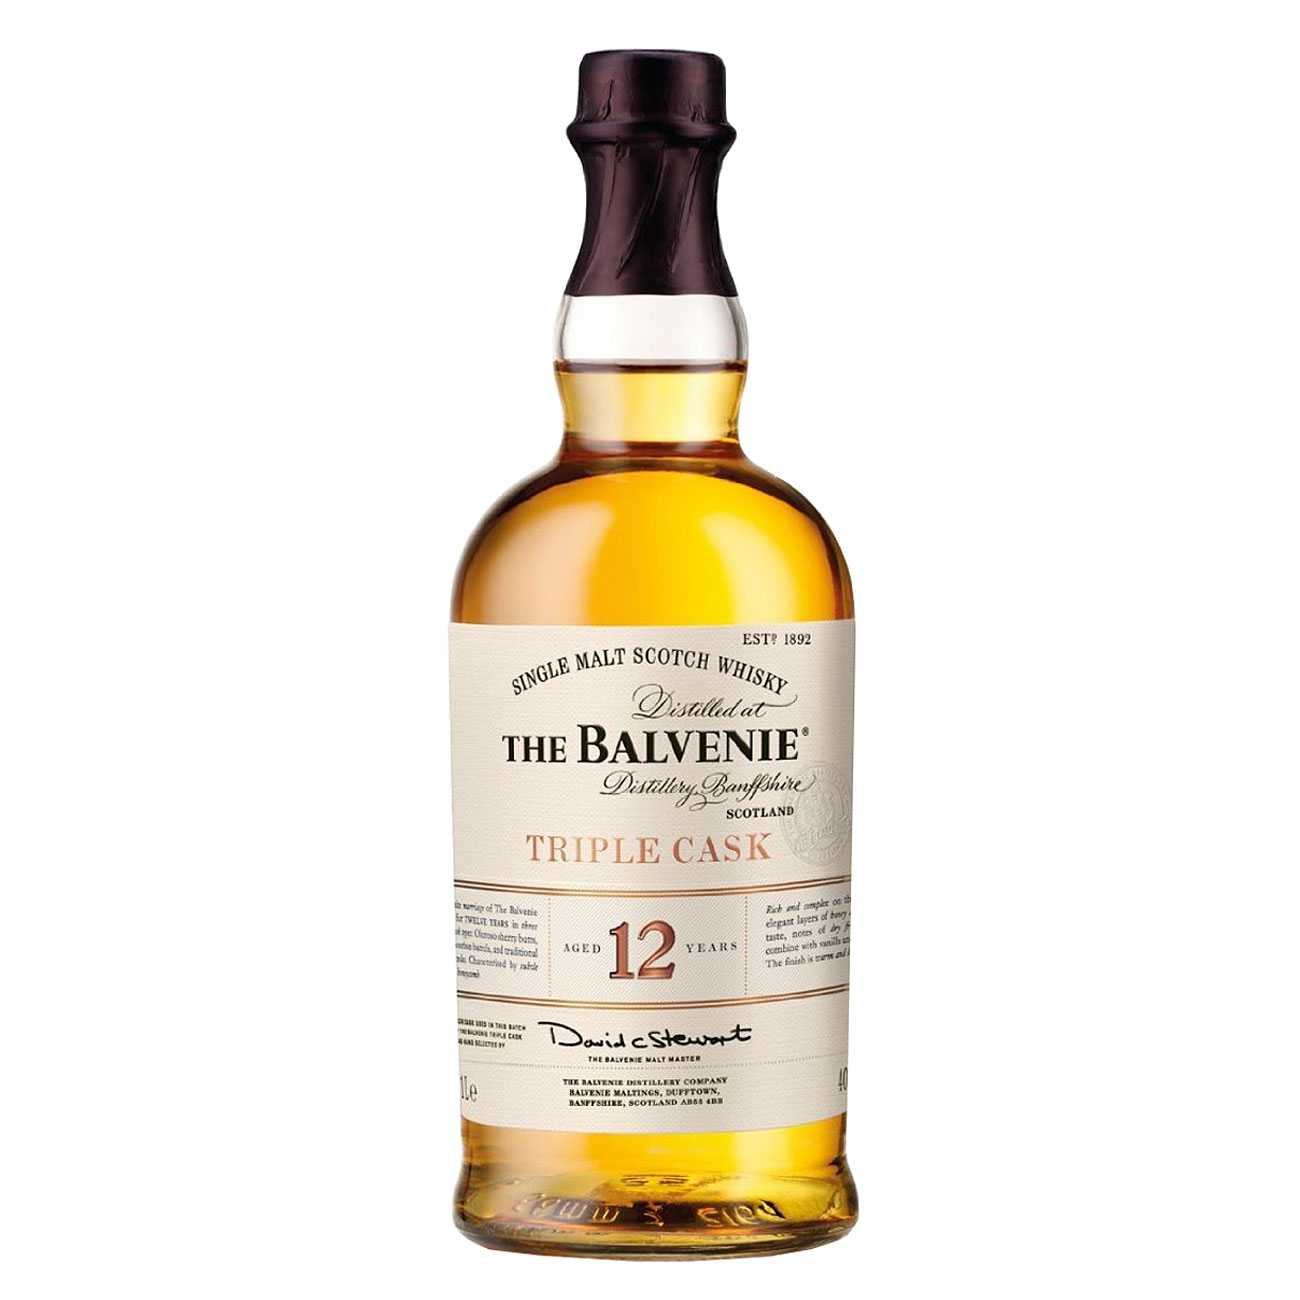 Whisky scotian, TRIPLE CASK 12 YEAR OLD 1000 ML, The Balvenie